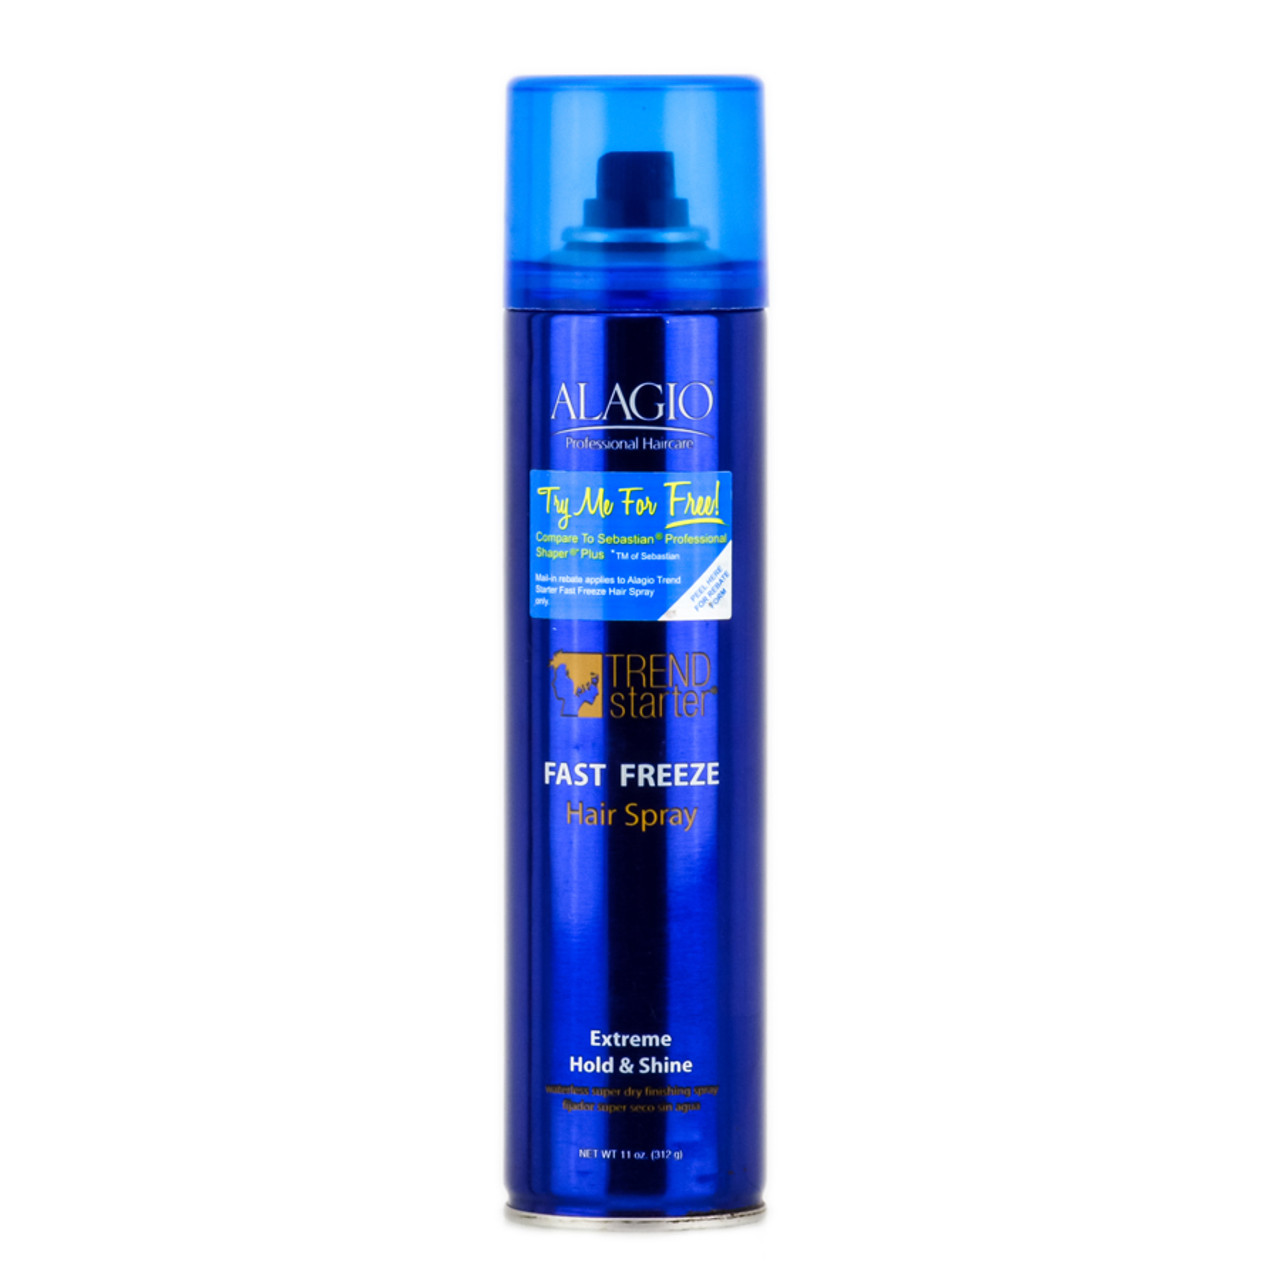 Alagio Trend Starter Fast Freeze Hair Spray